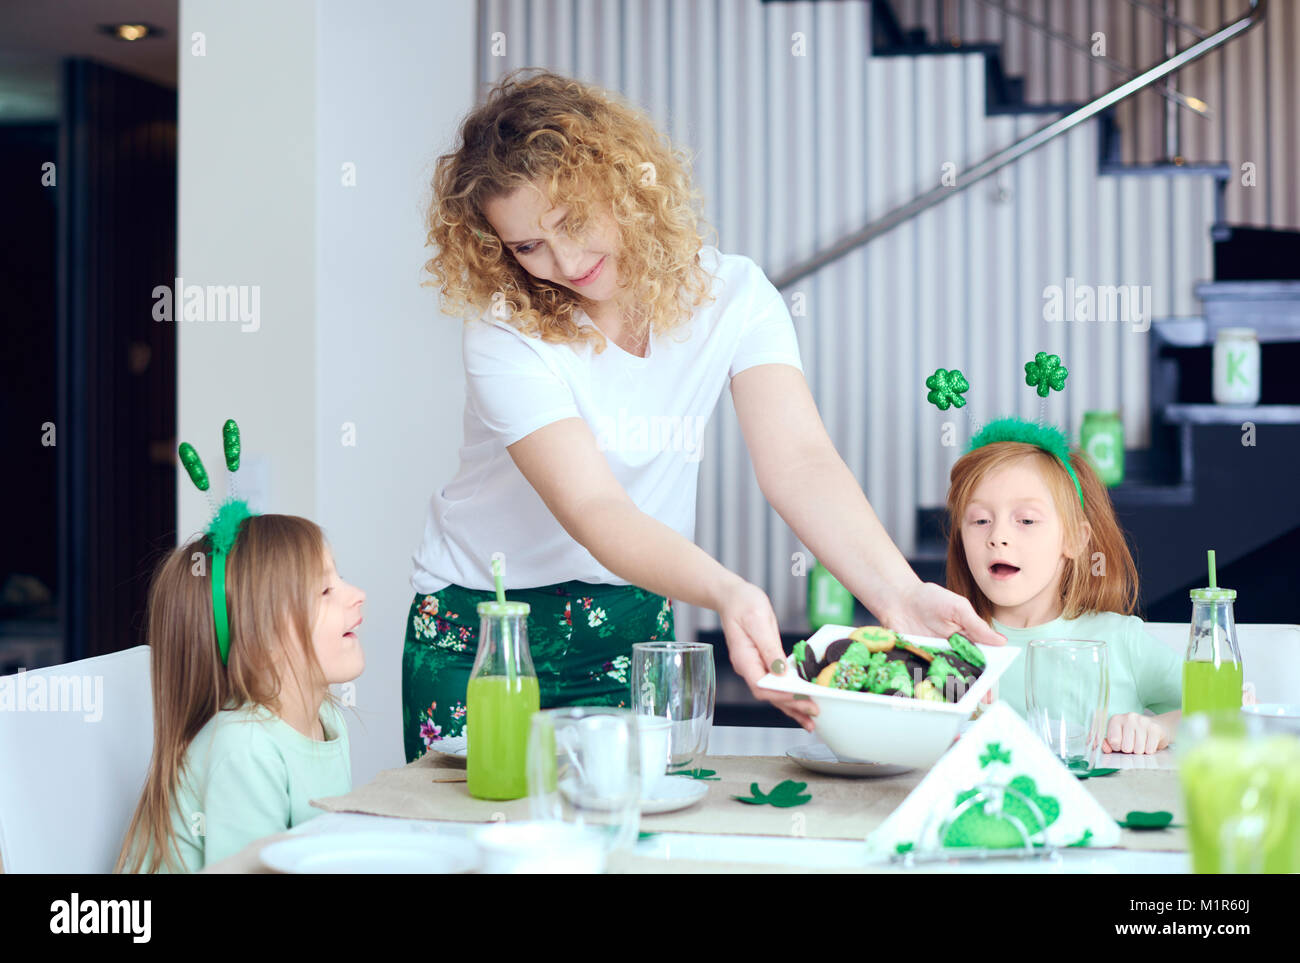 Mother and her children at kitchen - Stock Image